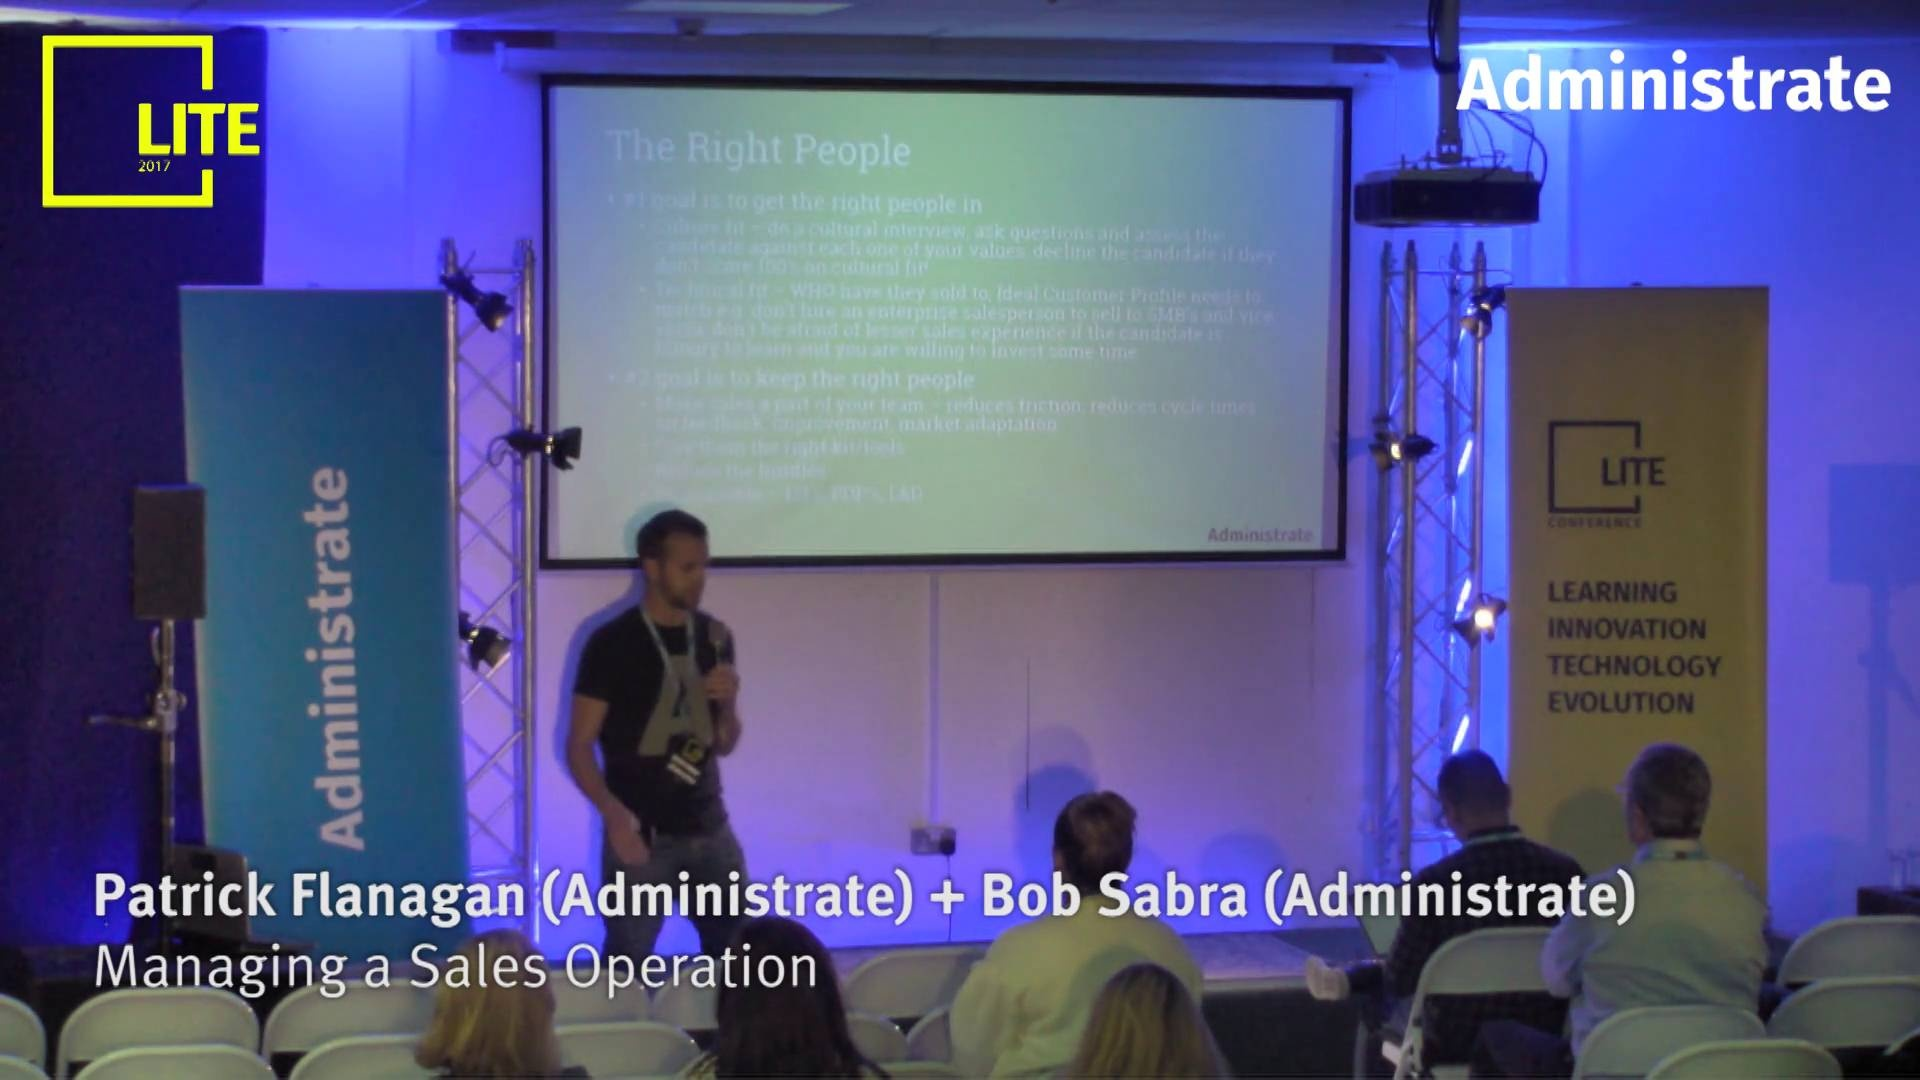 Managing a Sales Operation [Patrick Flanagan & Bob Sabra]